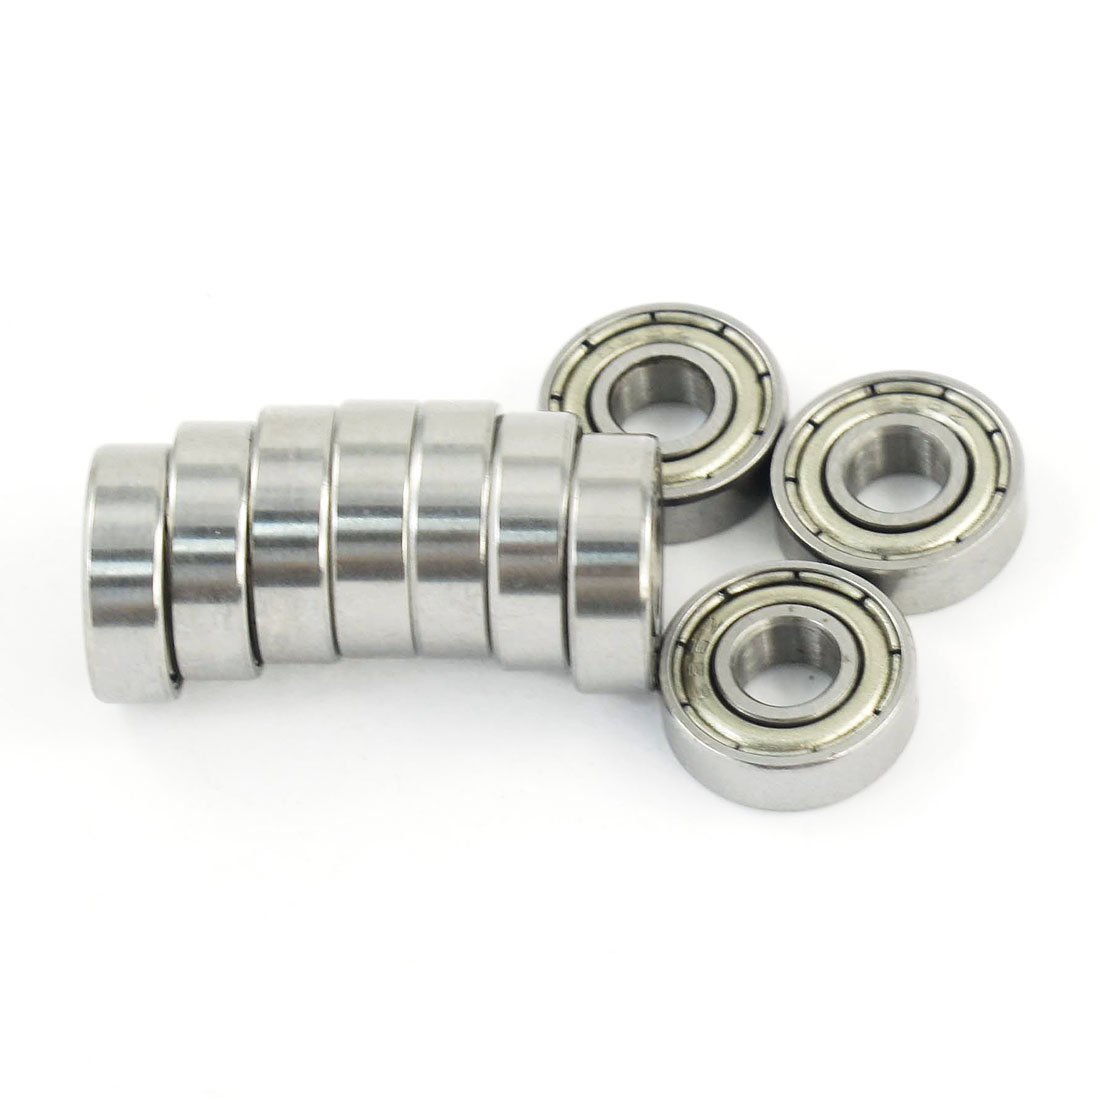 10 Pcs 695Z Dual Metal Shields Deep Groove Ball Bearing 5mm x 13mm x 4mm